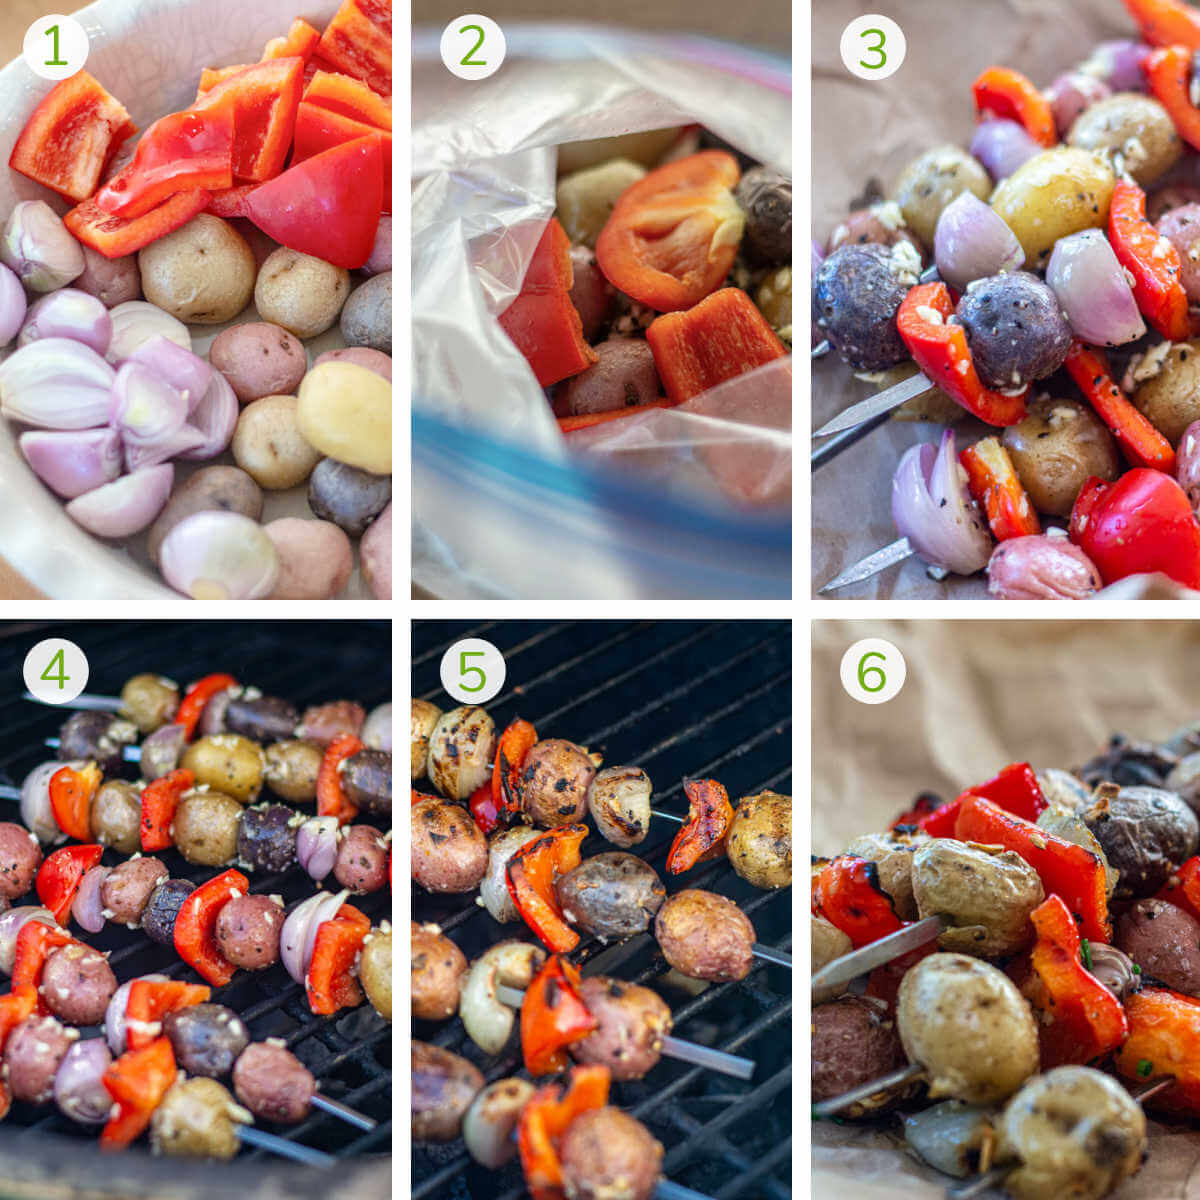 several process photos showing chopping the vegetables, adding to a Ziploc to coat with seasoning and grilling.